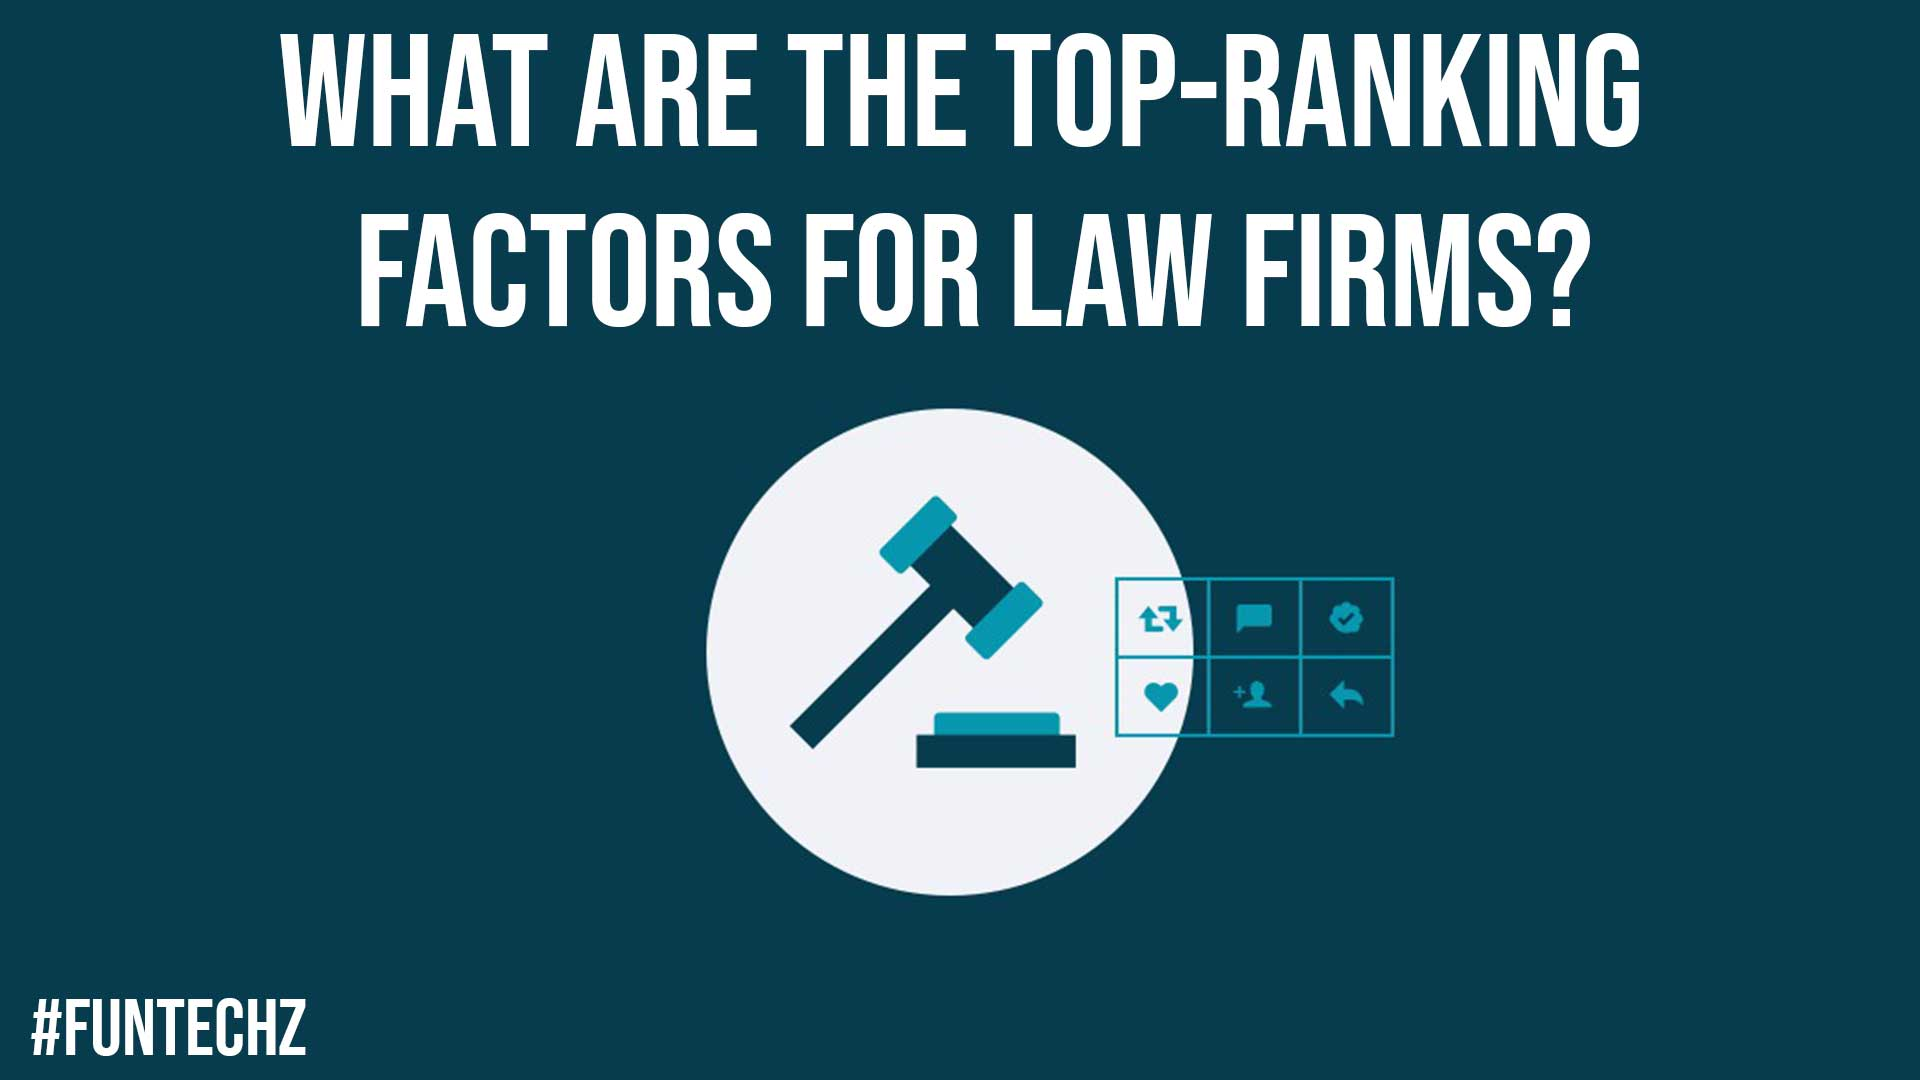 What Are the Top Ranking Factors for Law Firms